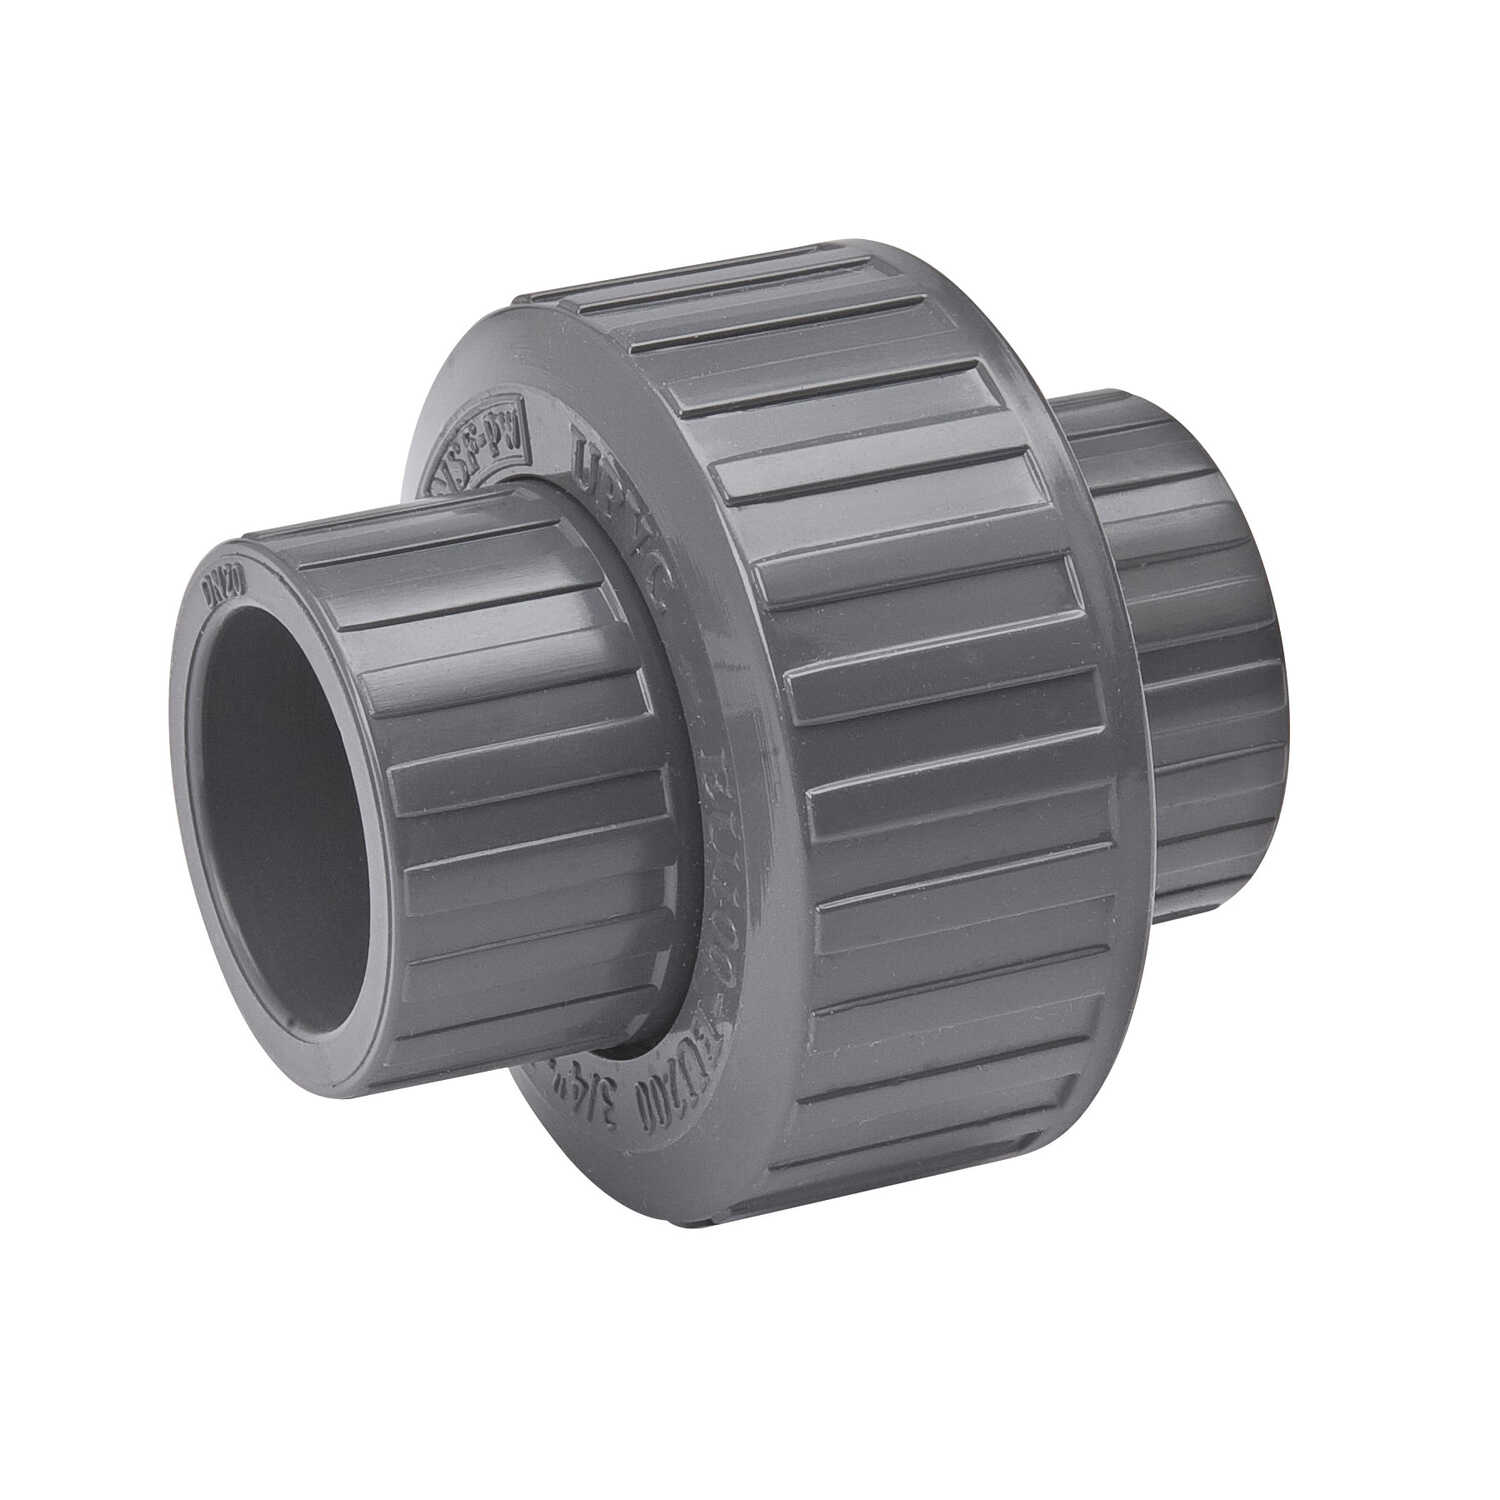 B & K  ProLine  Schedule 80  1 in. FPT   x 1 in. Dia. Threaded  PVC  Union